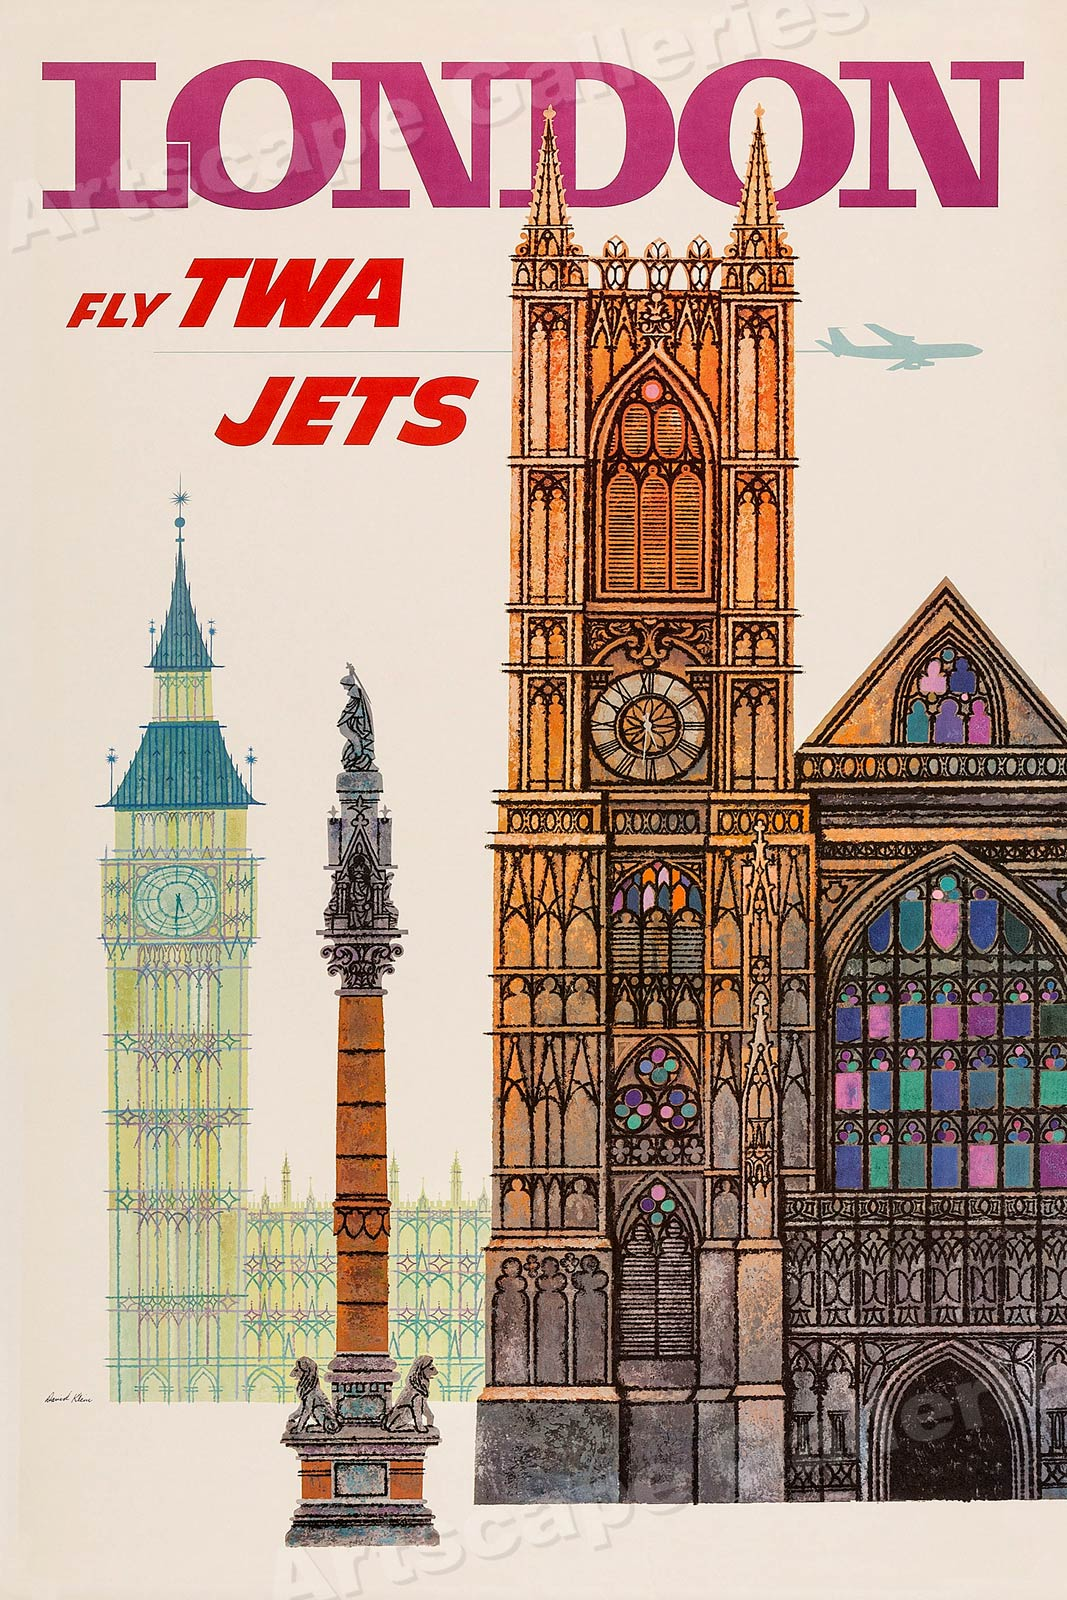 1960 London Fly Twa Jets Vintage Style Travel Poster